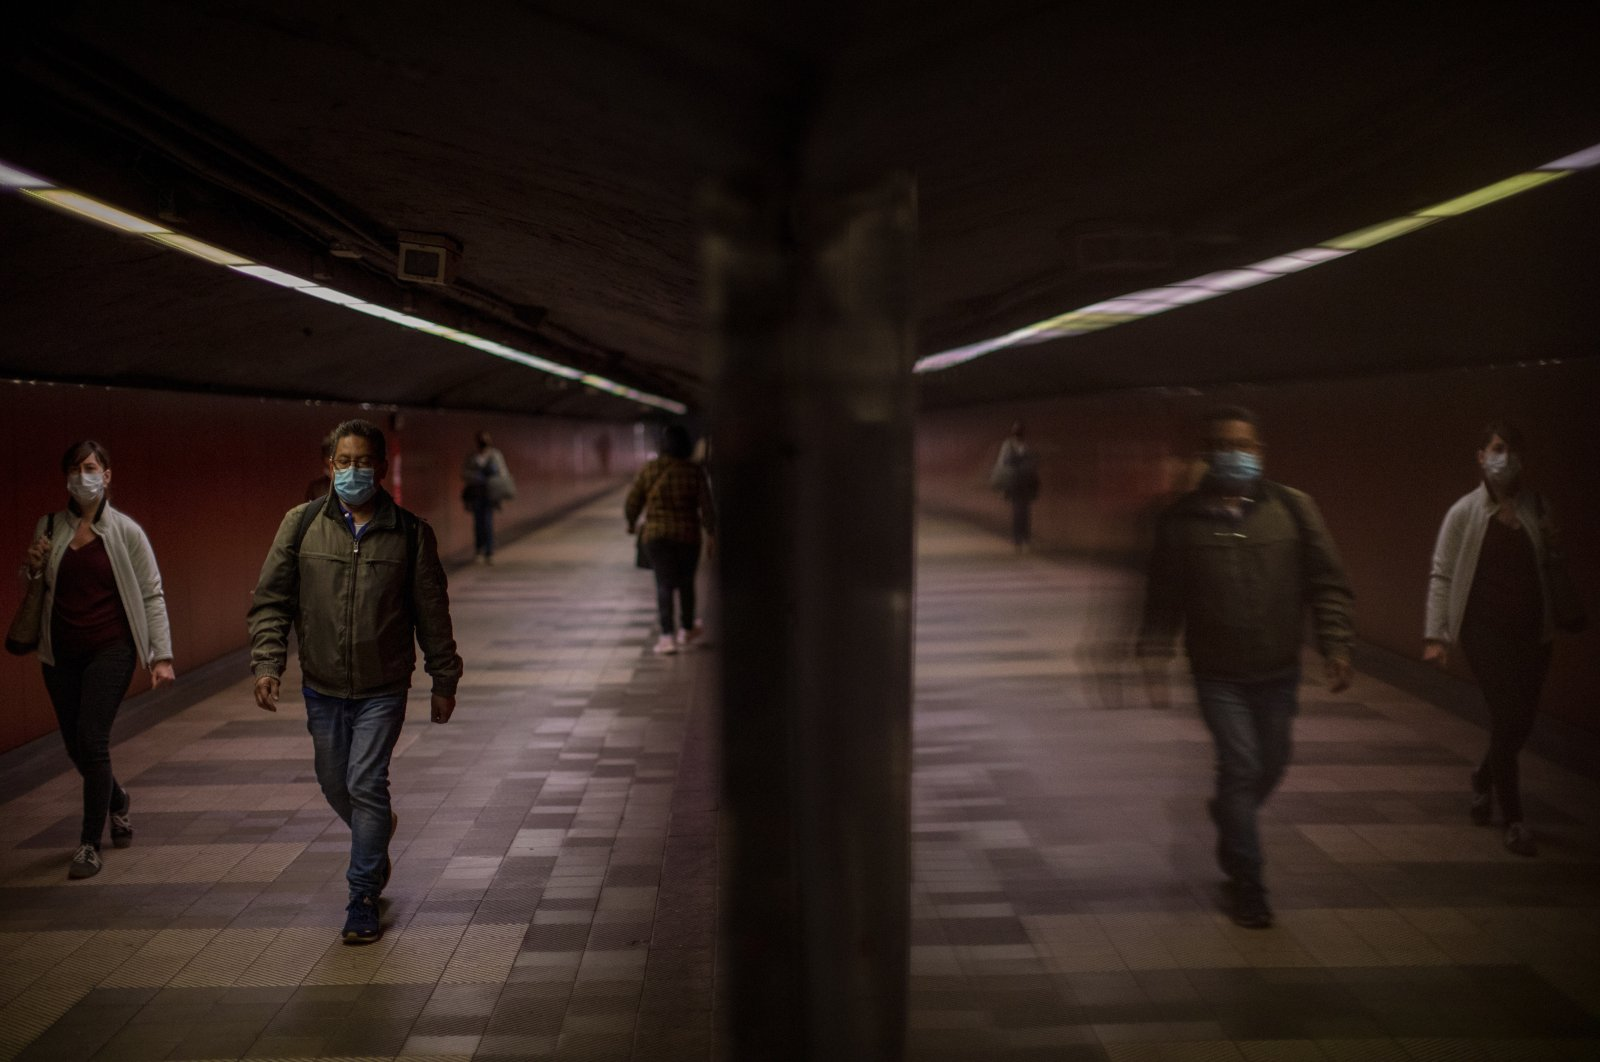 Passengers wearing face masks to prevent the spread of the coronavirus walk along a tunnel connecting platforms in a metro station, Barcelona, Spain, April 15, 2020. (AP Photo)